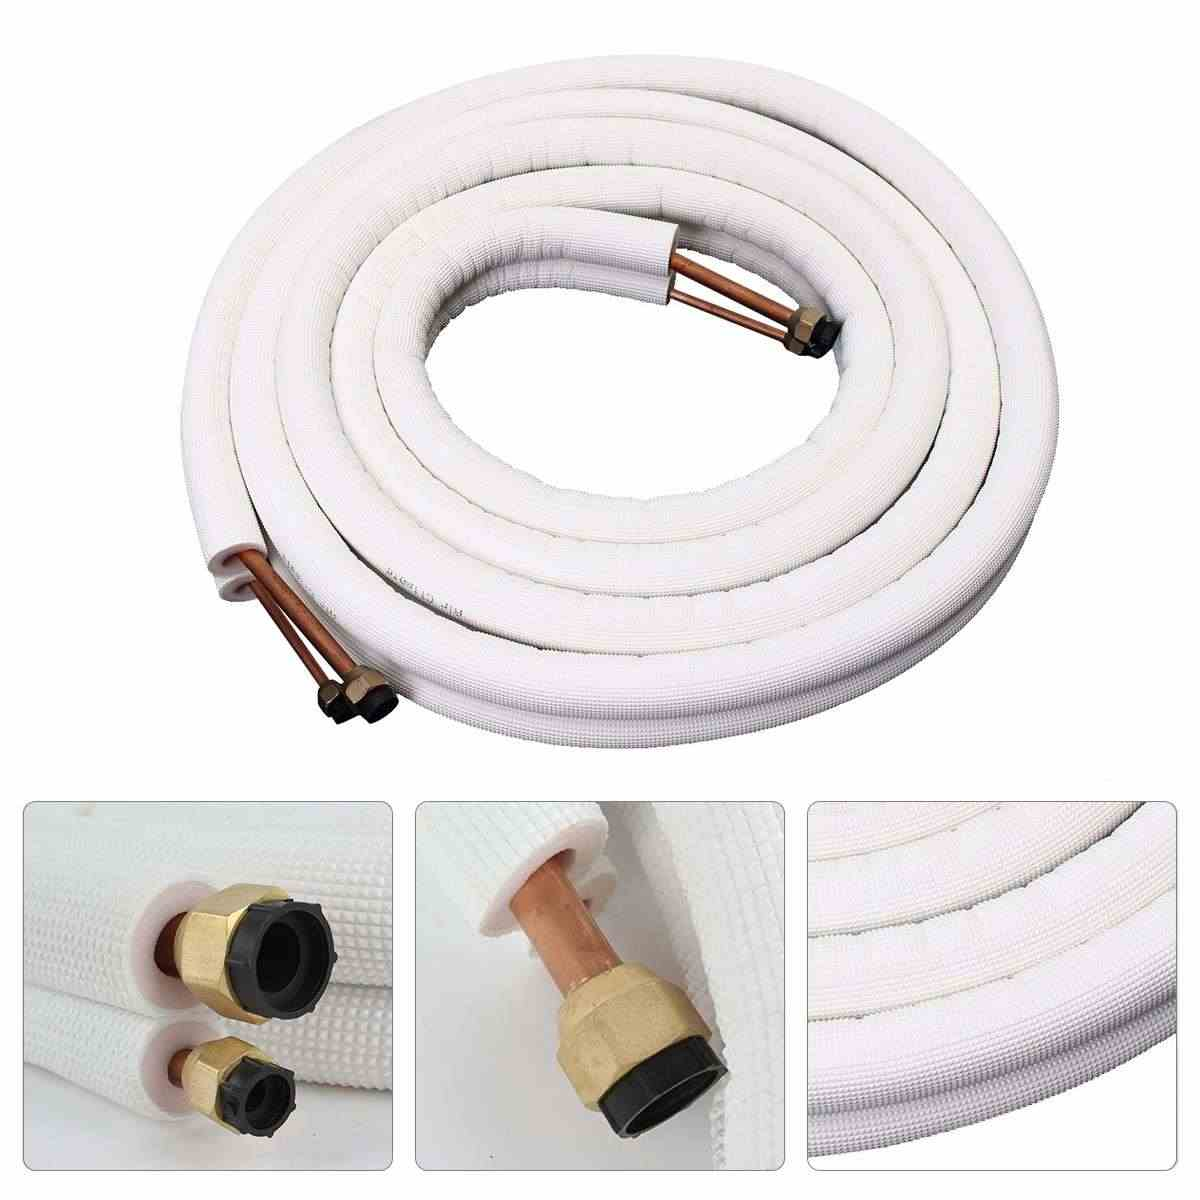 Air Conditioner Tube 1/4 3/8 Insulated Coil Copper Pipe 5m Air Conditioning Pipe Twin Line Set Aluminum Pipe Split Line Wire